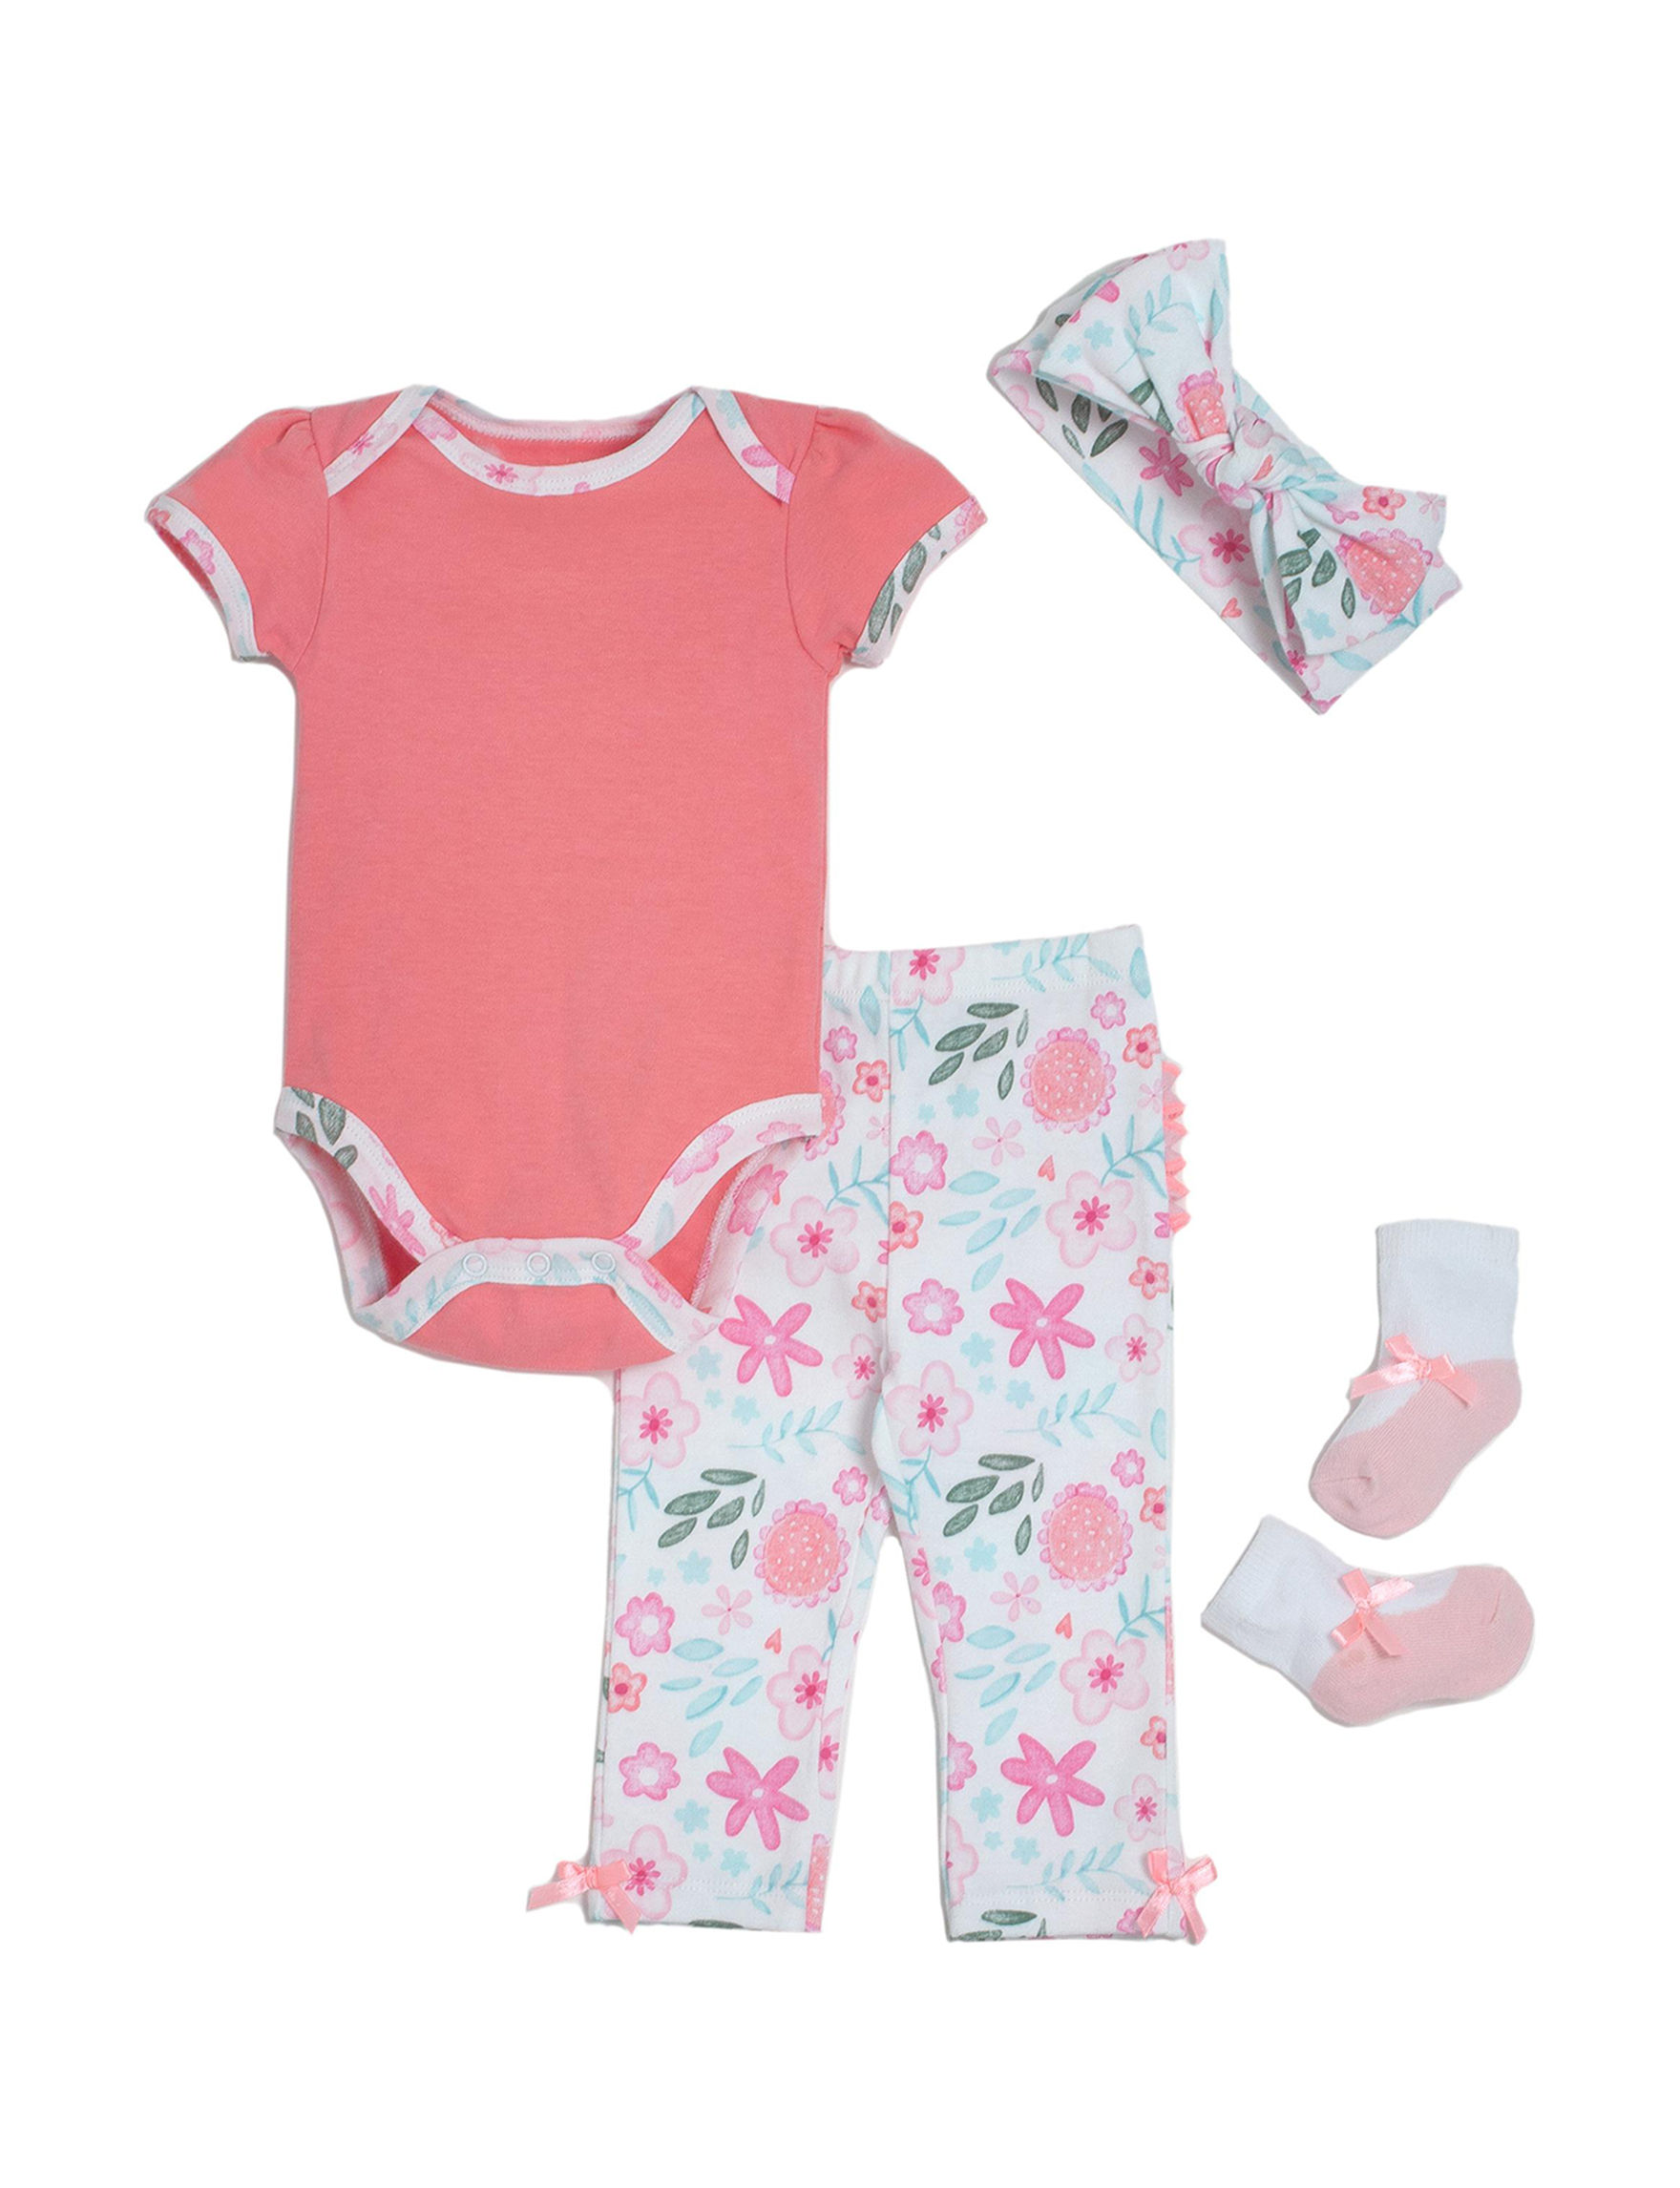 Baby Gear Pink Floral